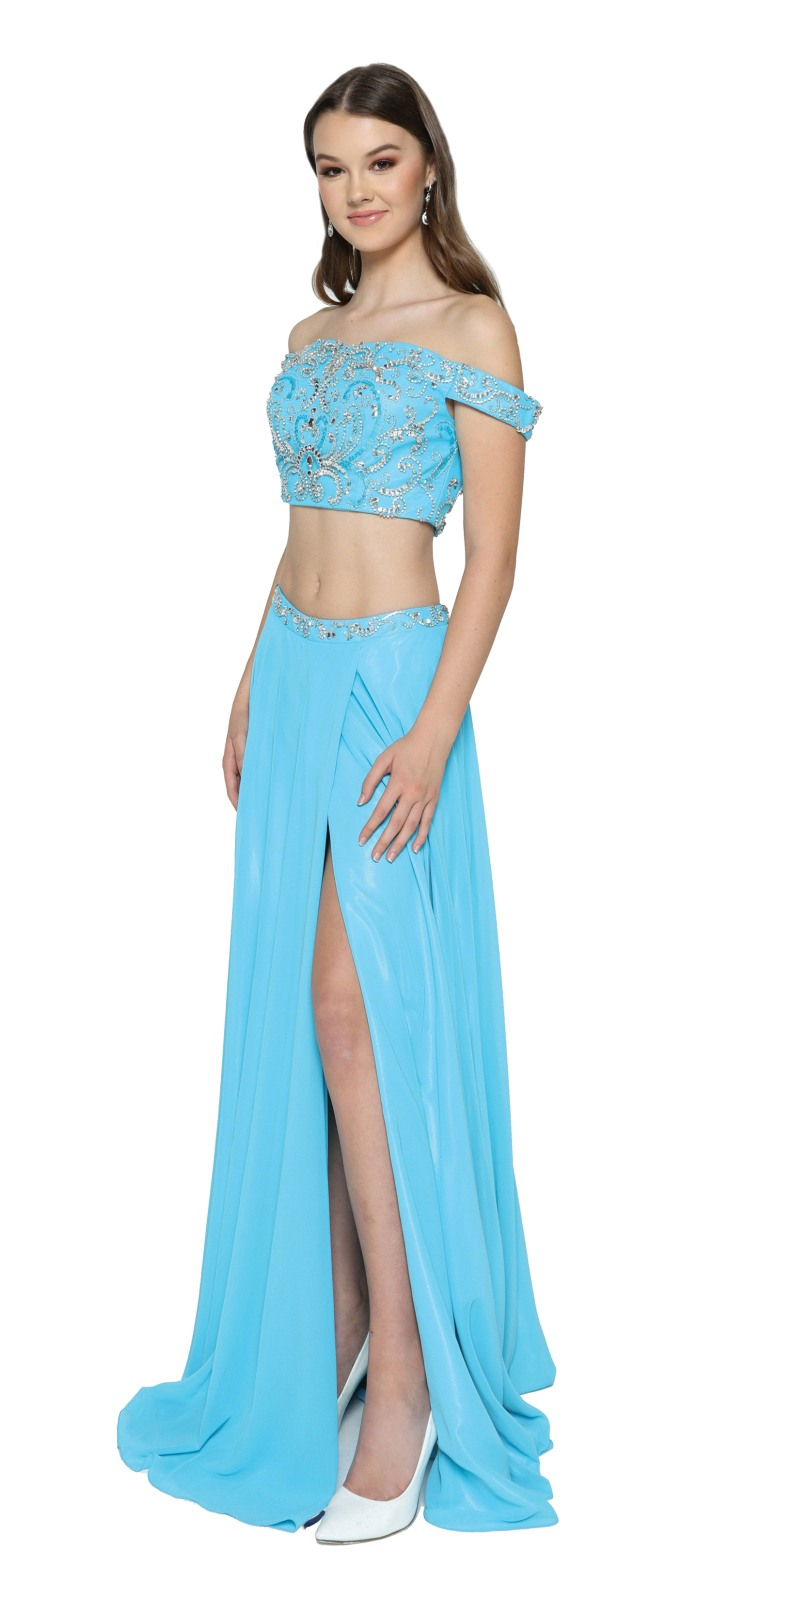 Juliet 680 Fuchsia Two-Piece Prom Gown Off-Shoulder with Slit ...